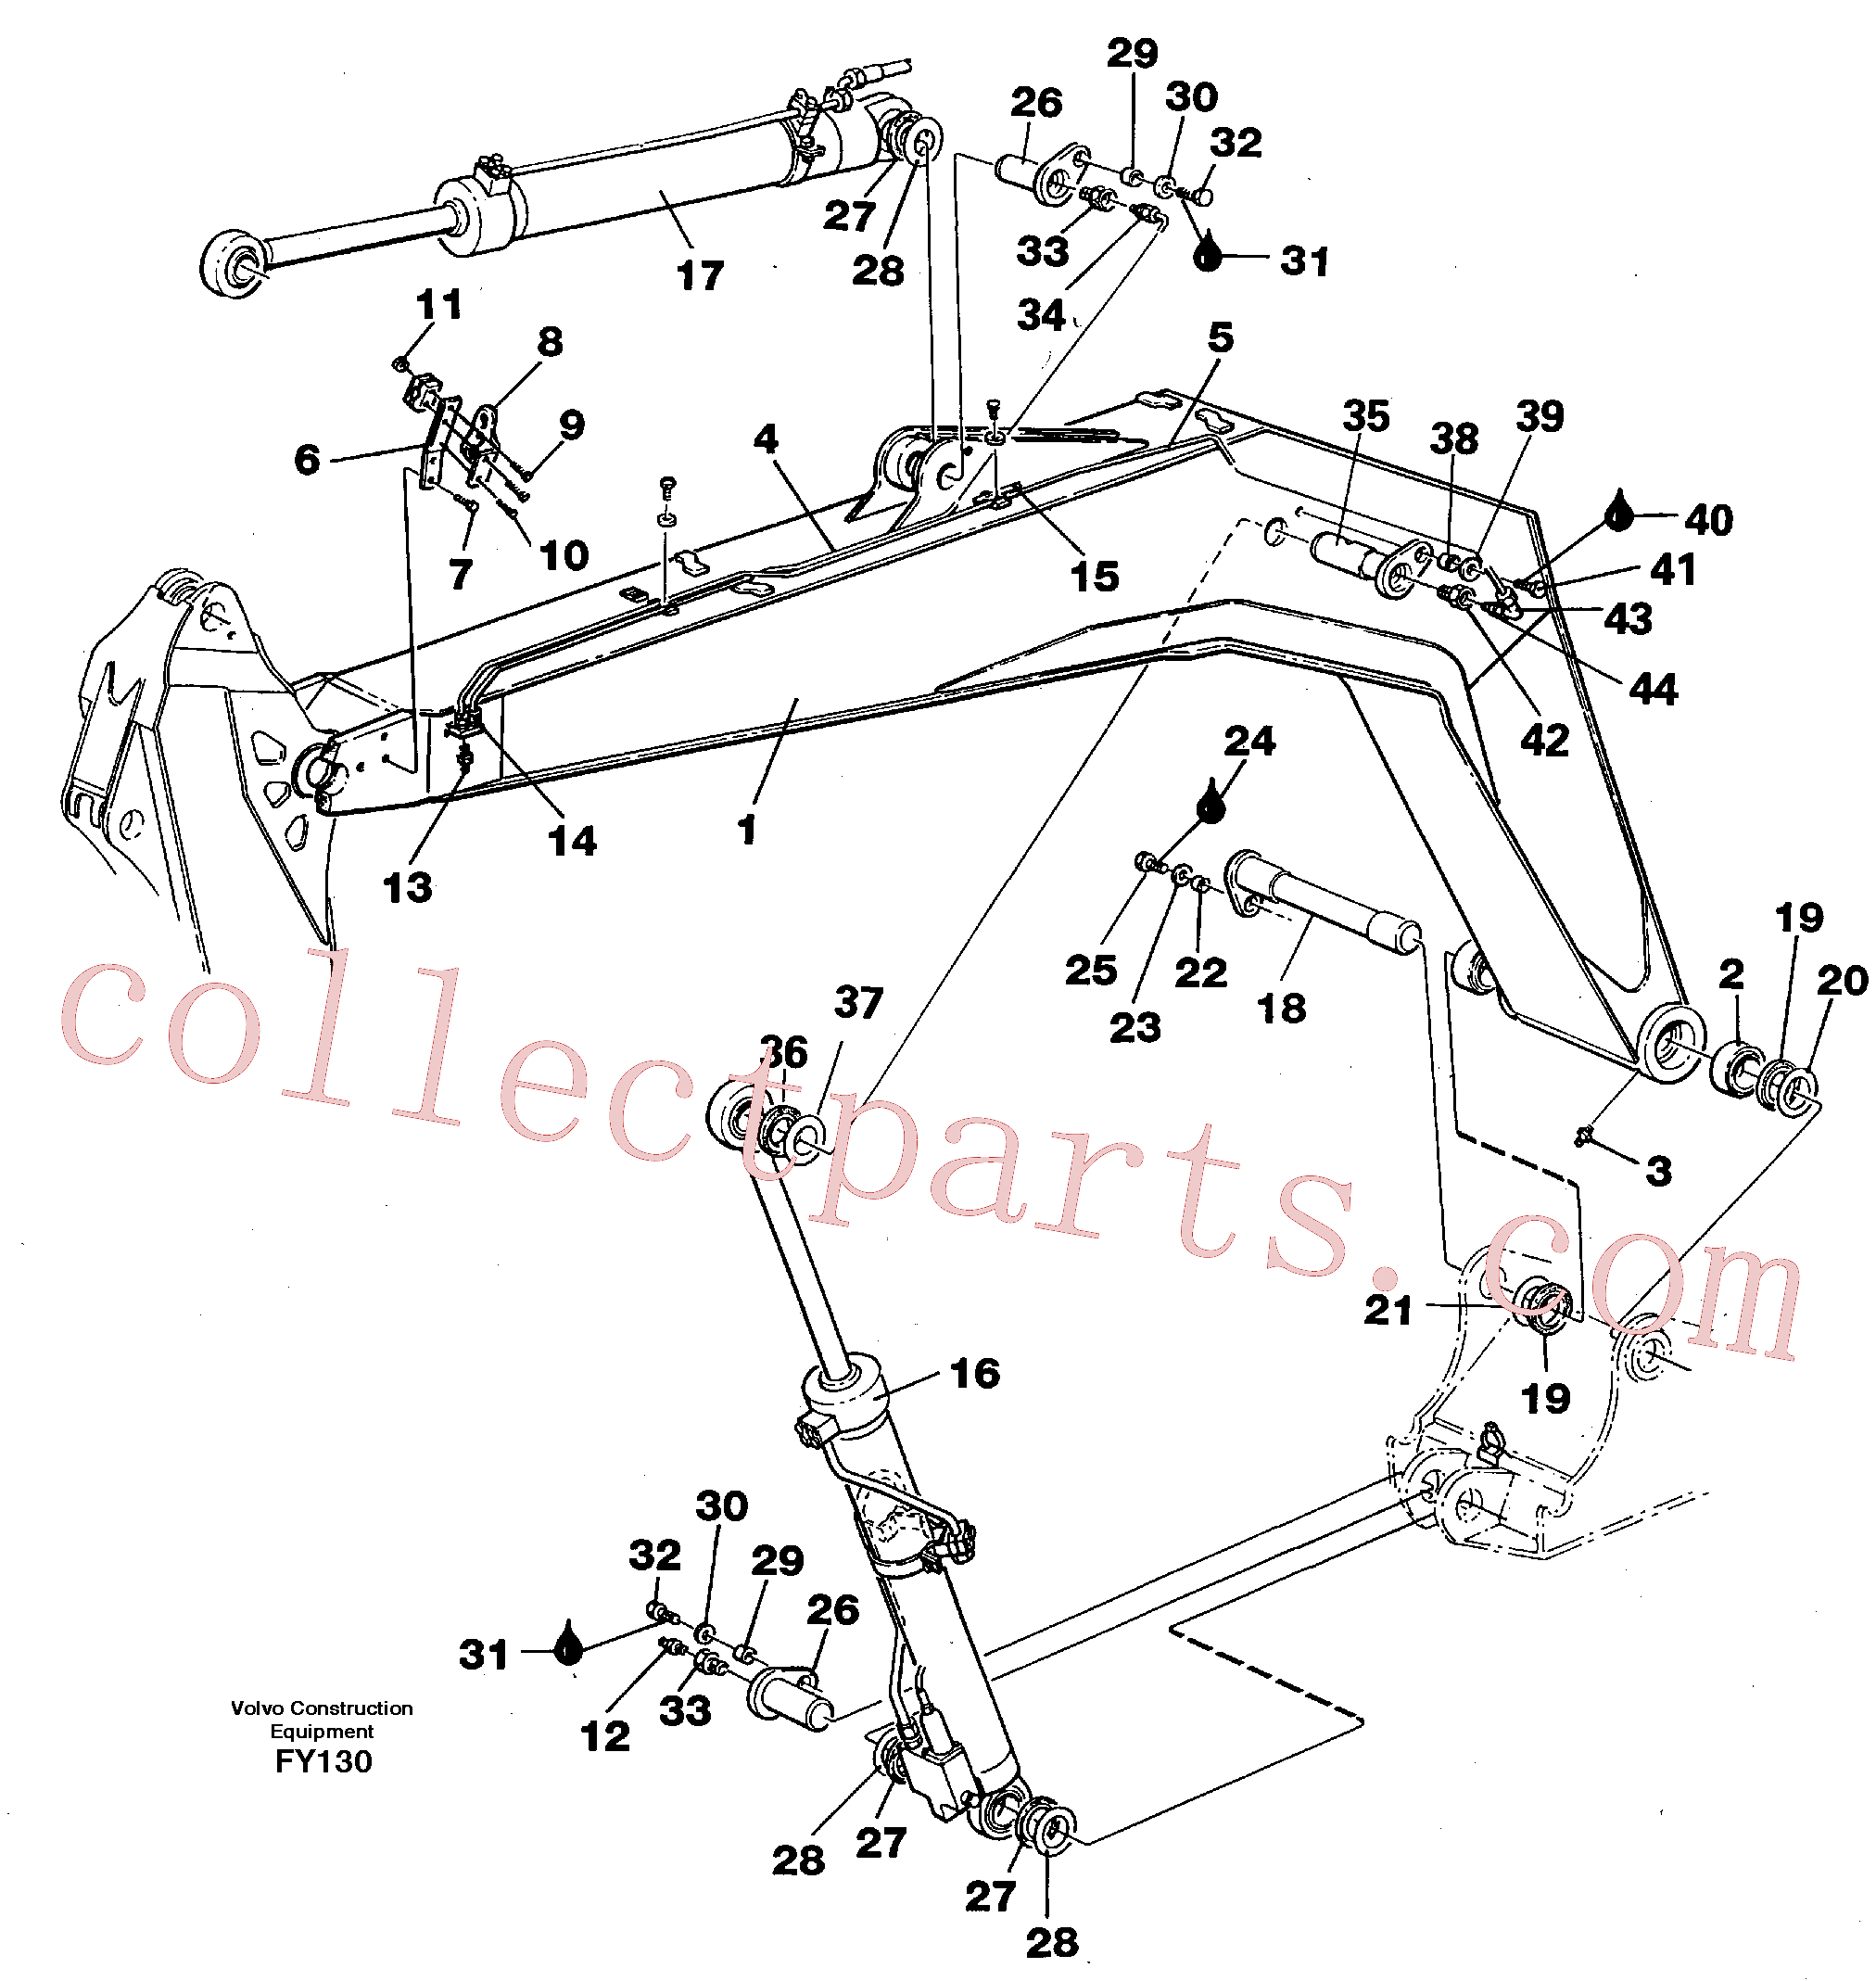 VOE14042986 for Volvo Backhoe boom 4,40m(FY130 assembly)